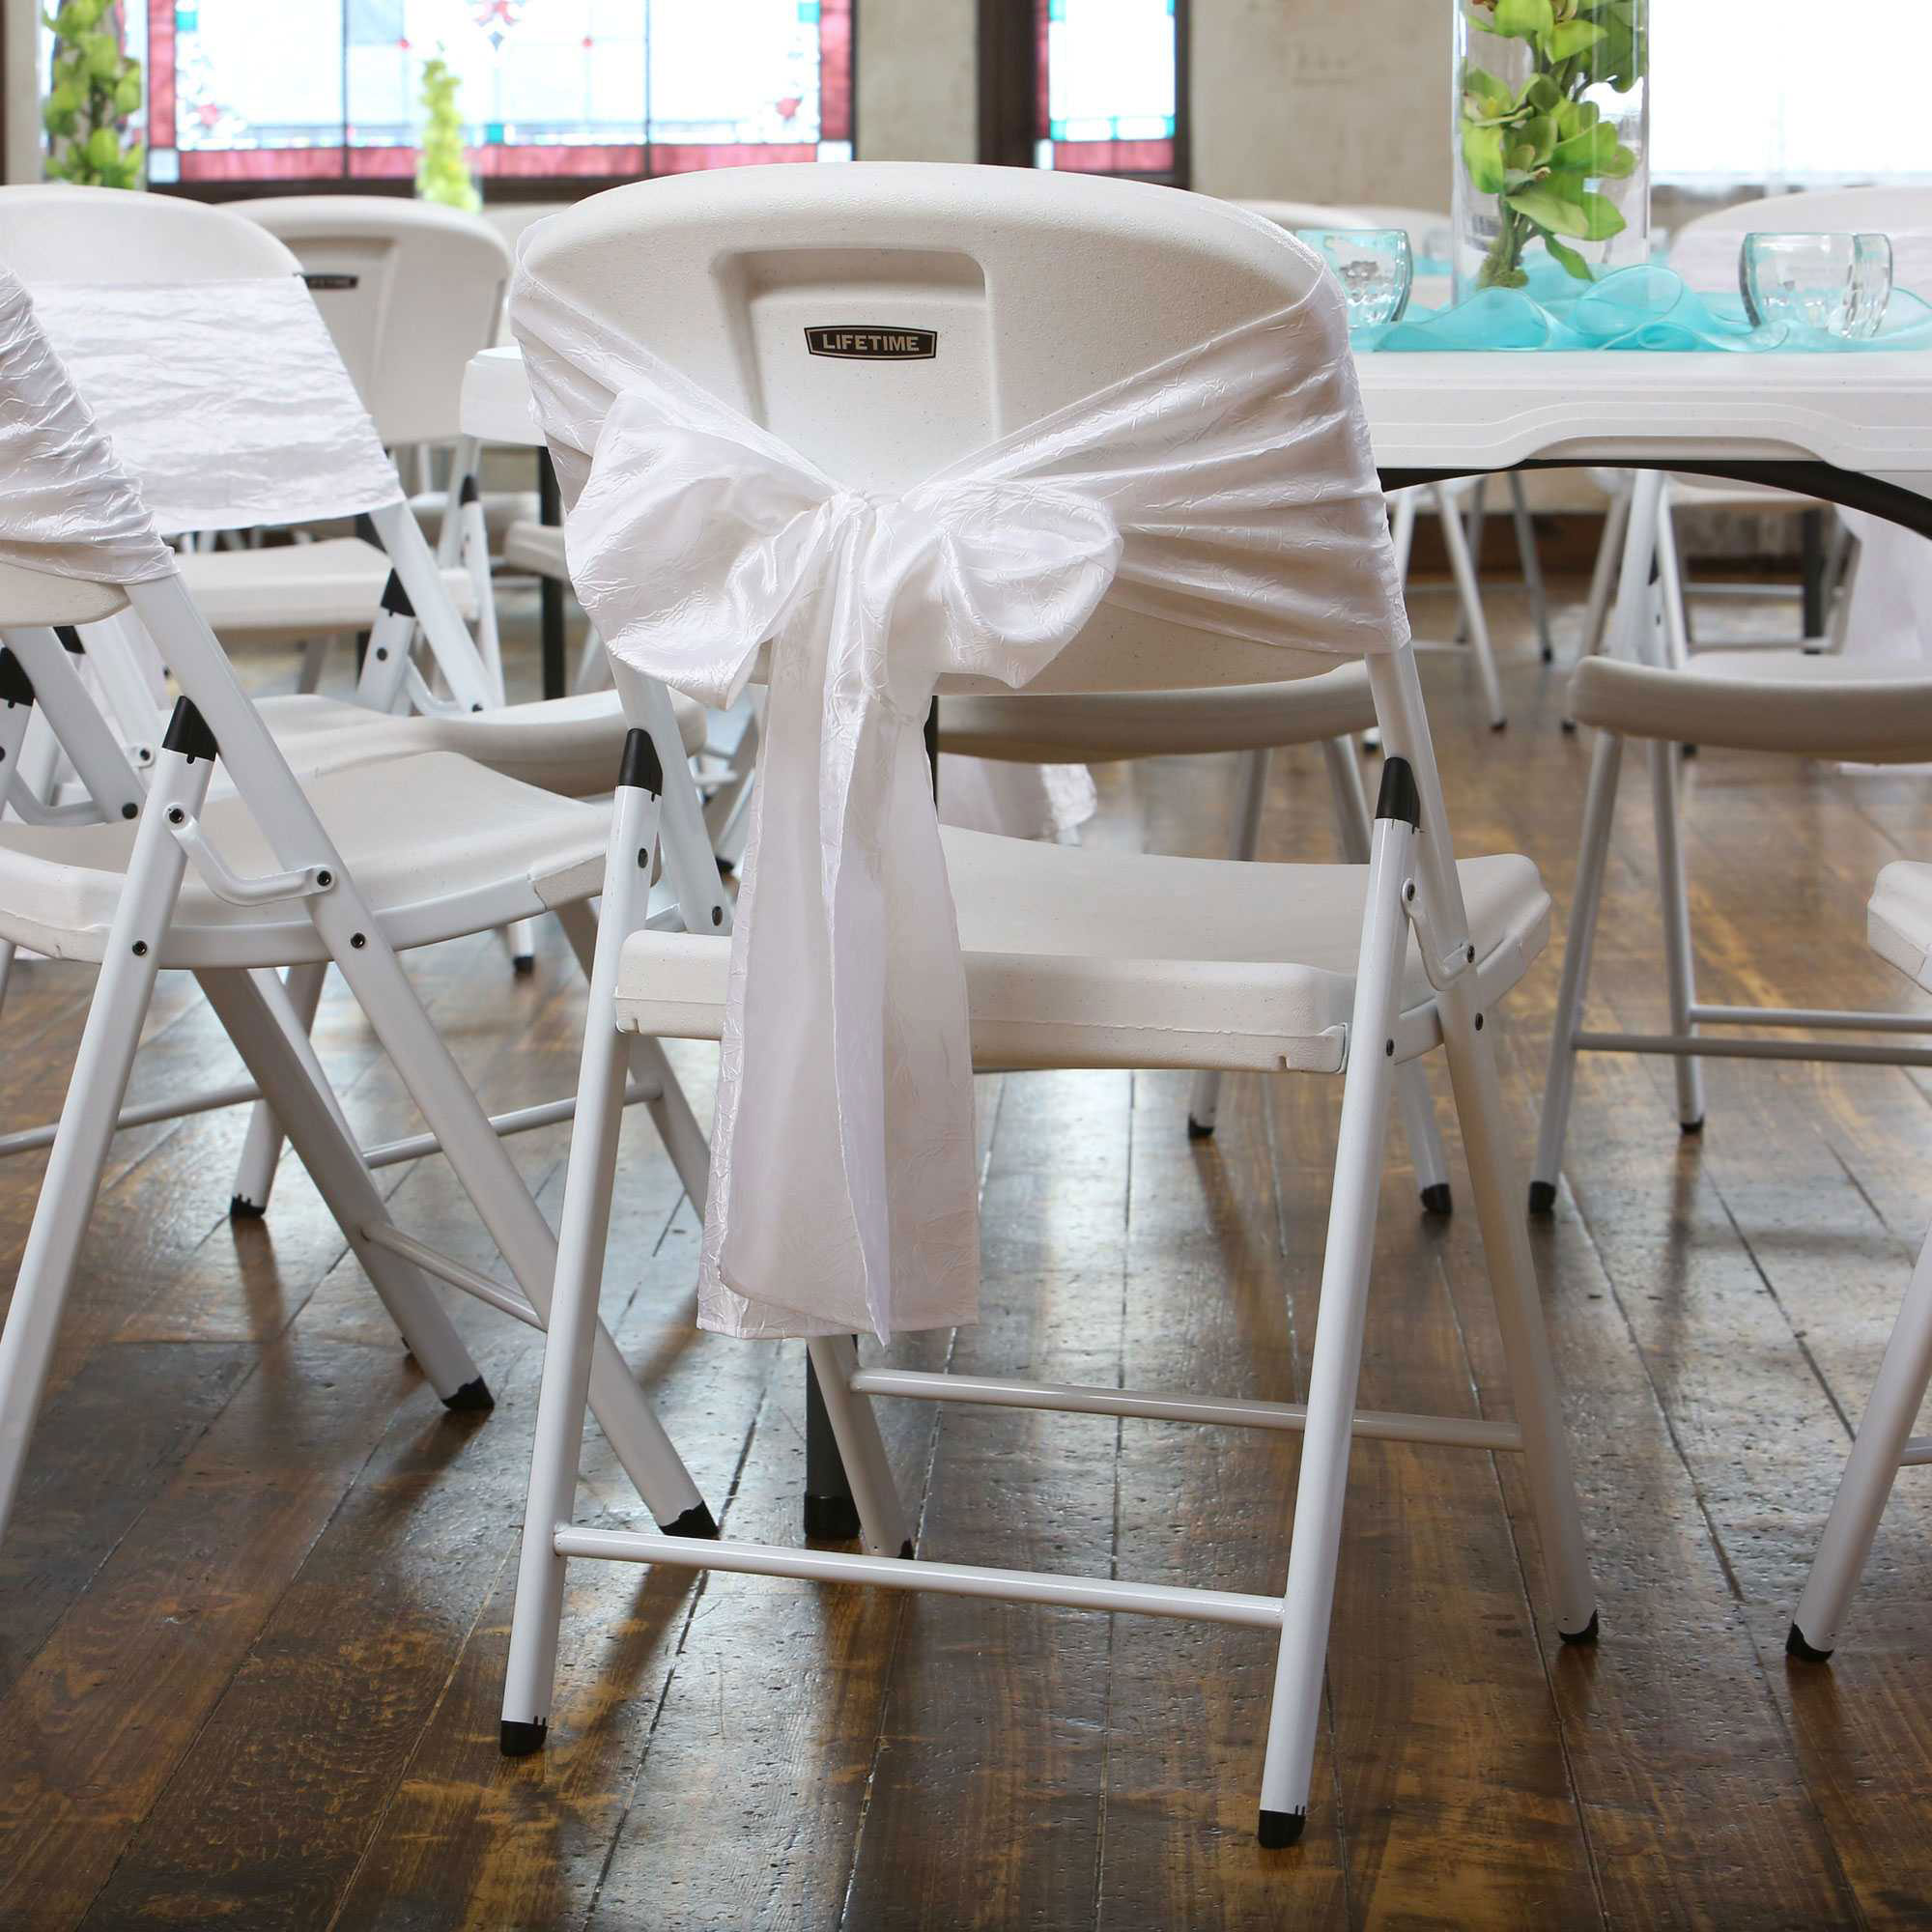 lifetime 80359 white wedding chair 32 pack on sale with fast shipping